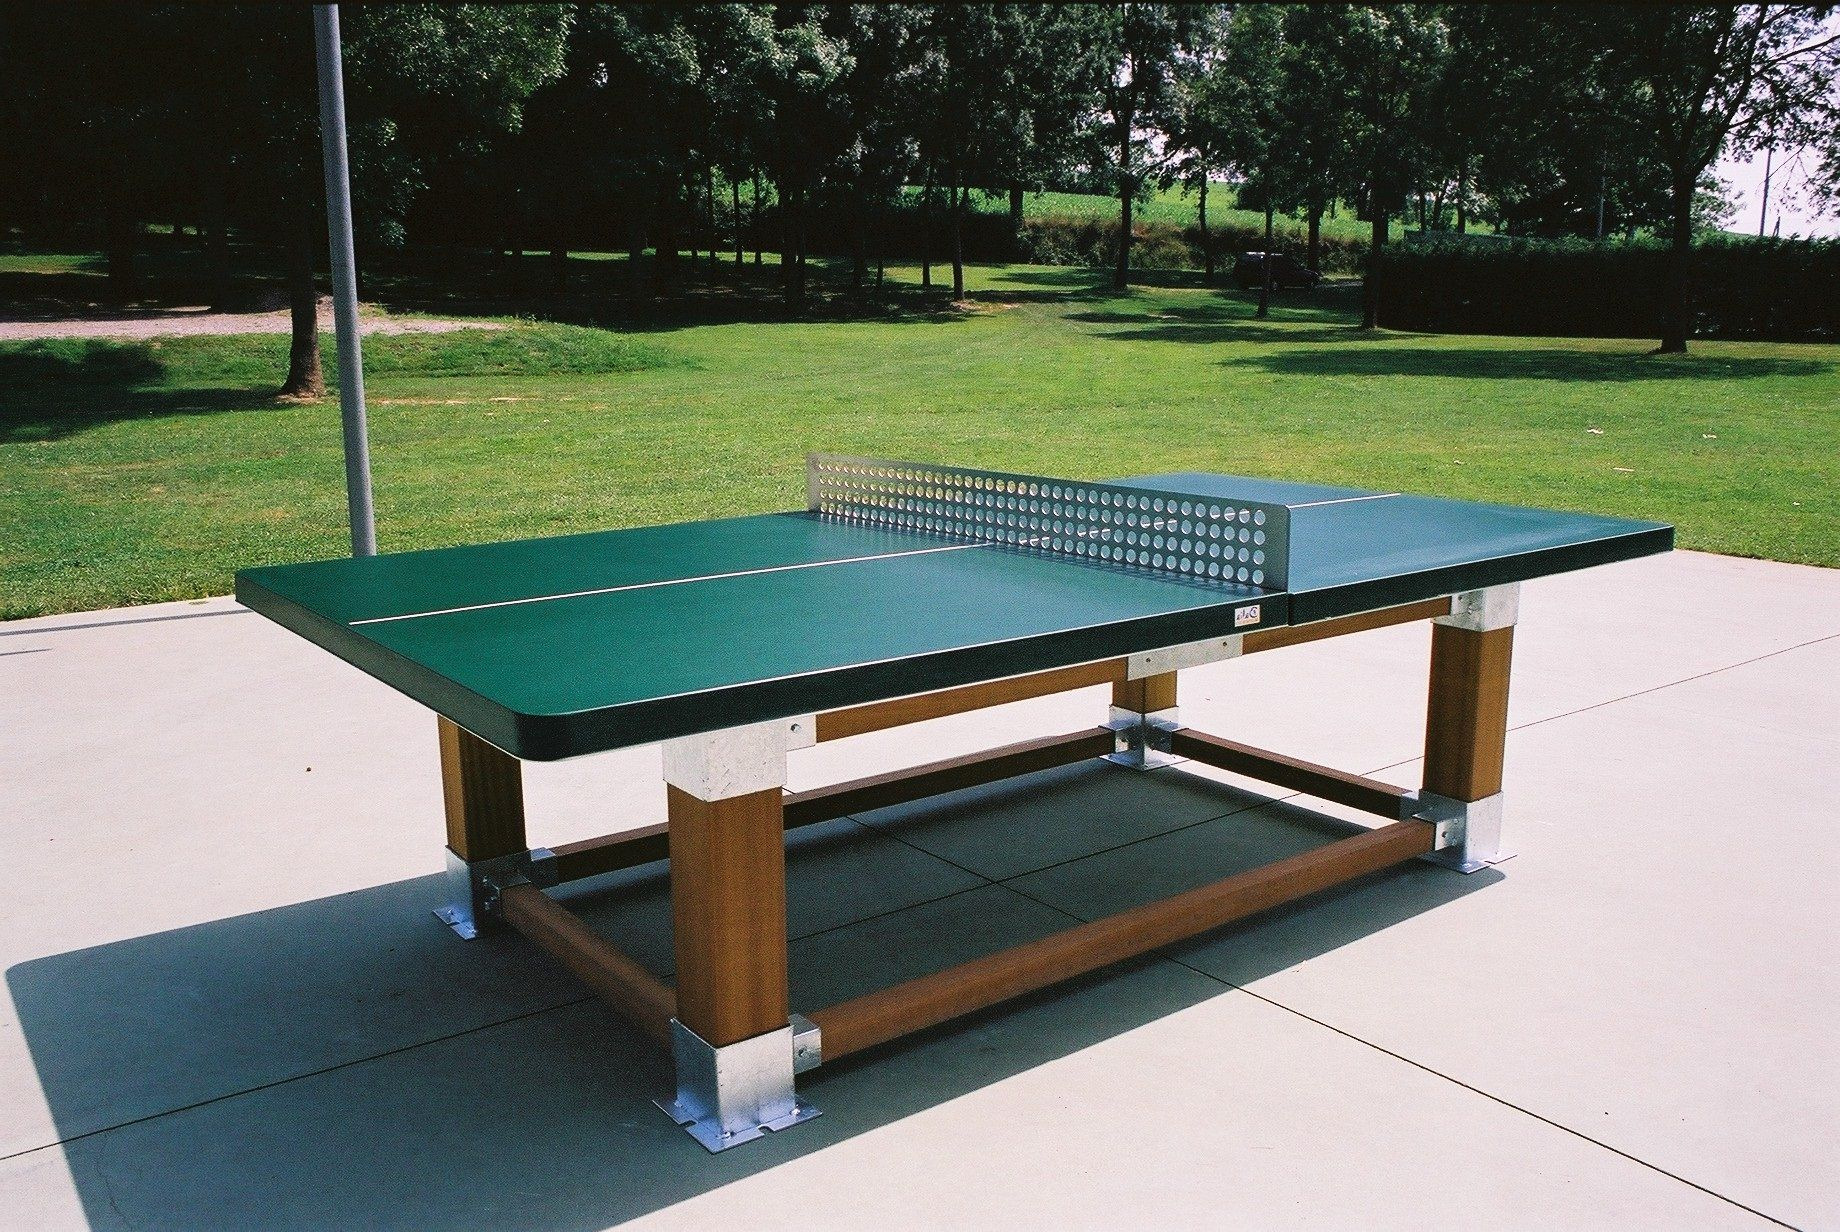 Captivating outdoor ping pong table with images